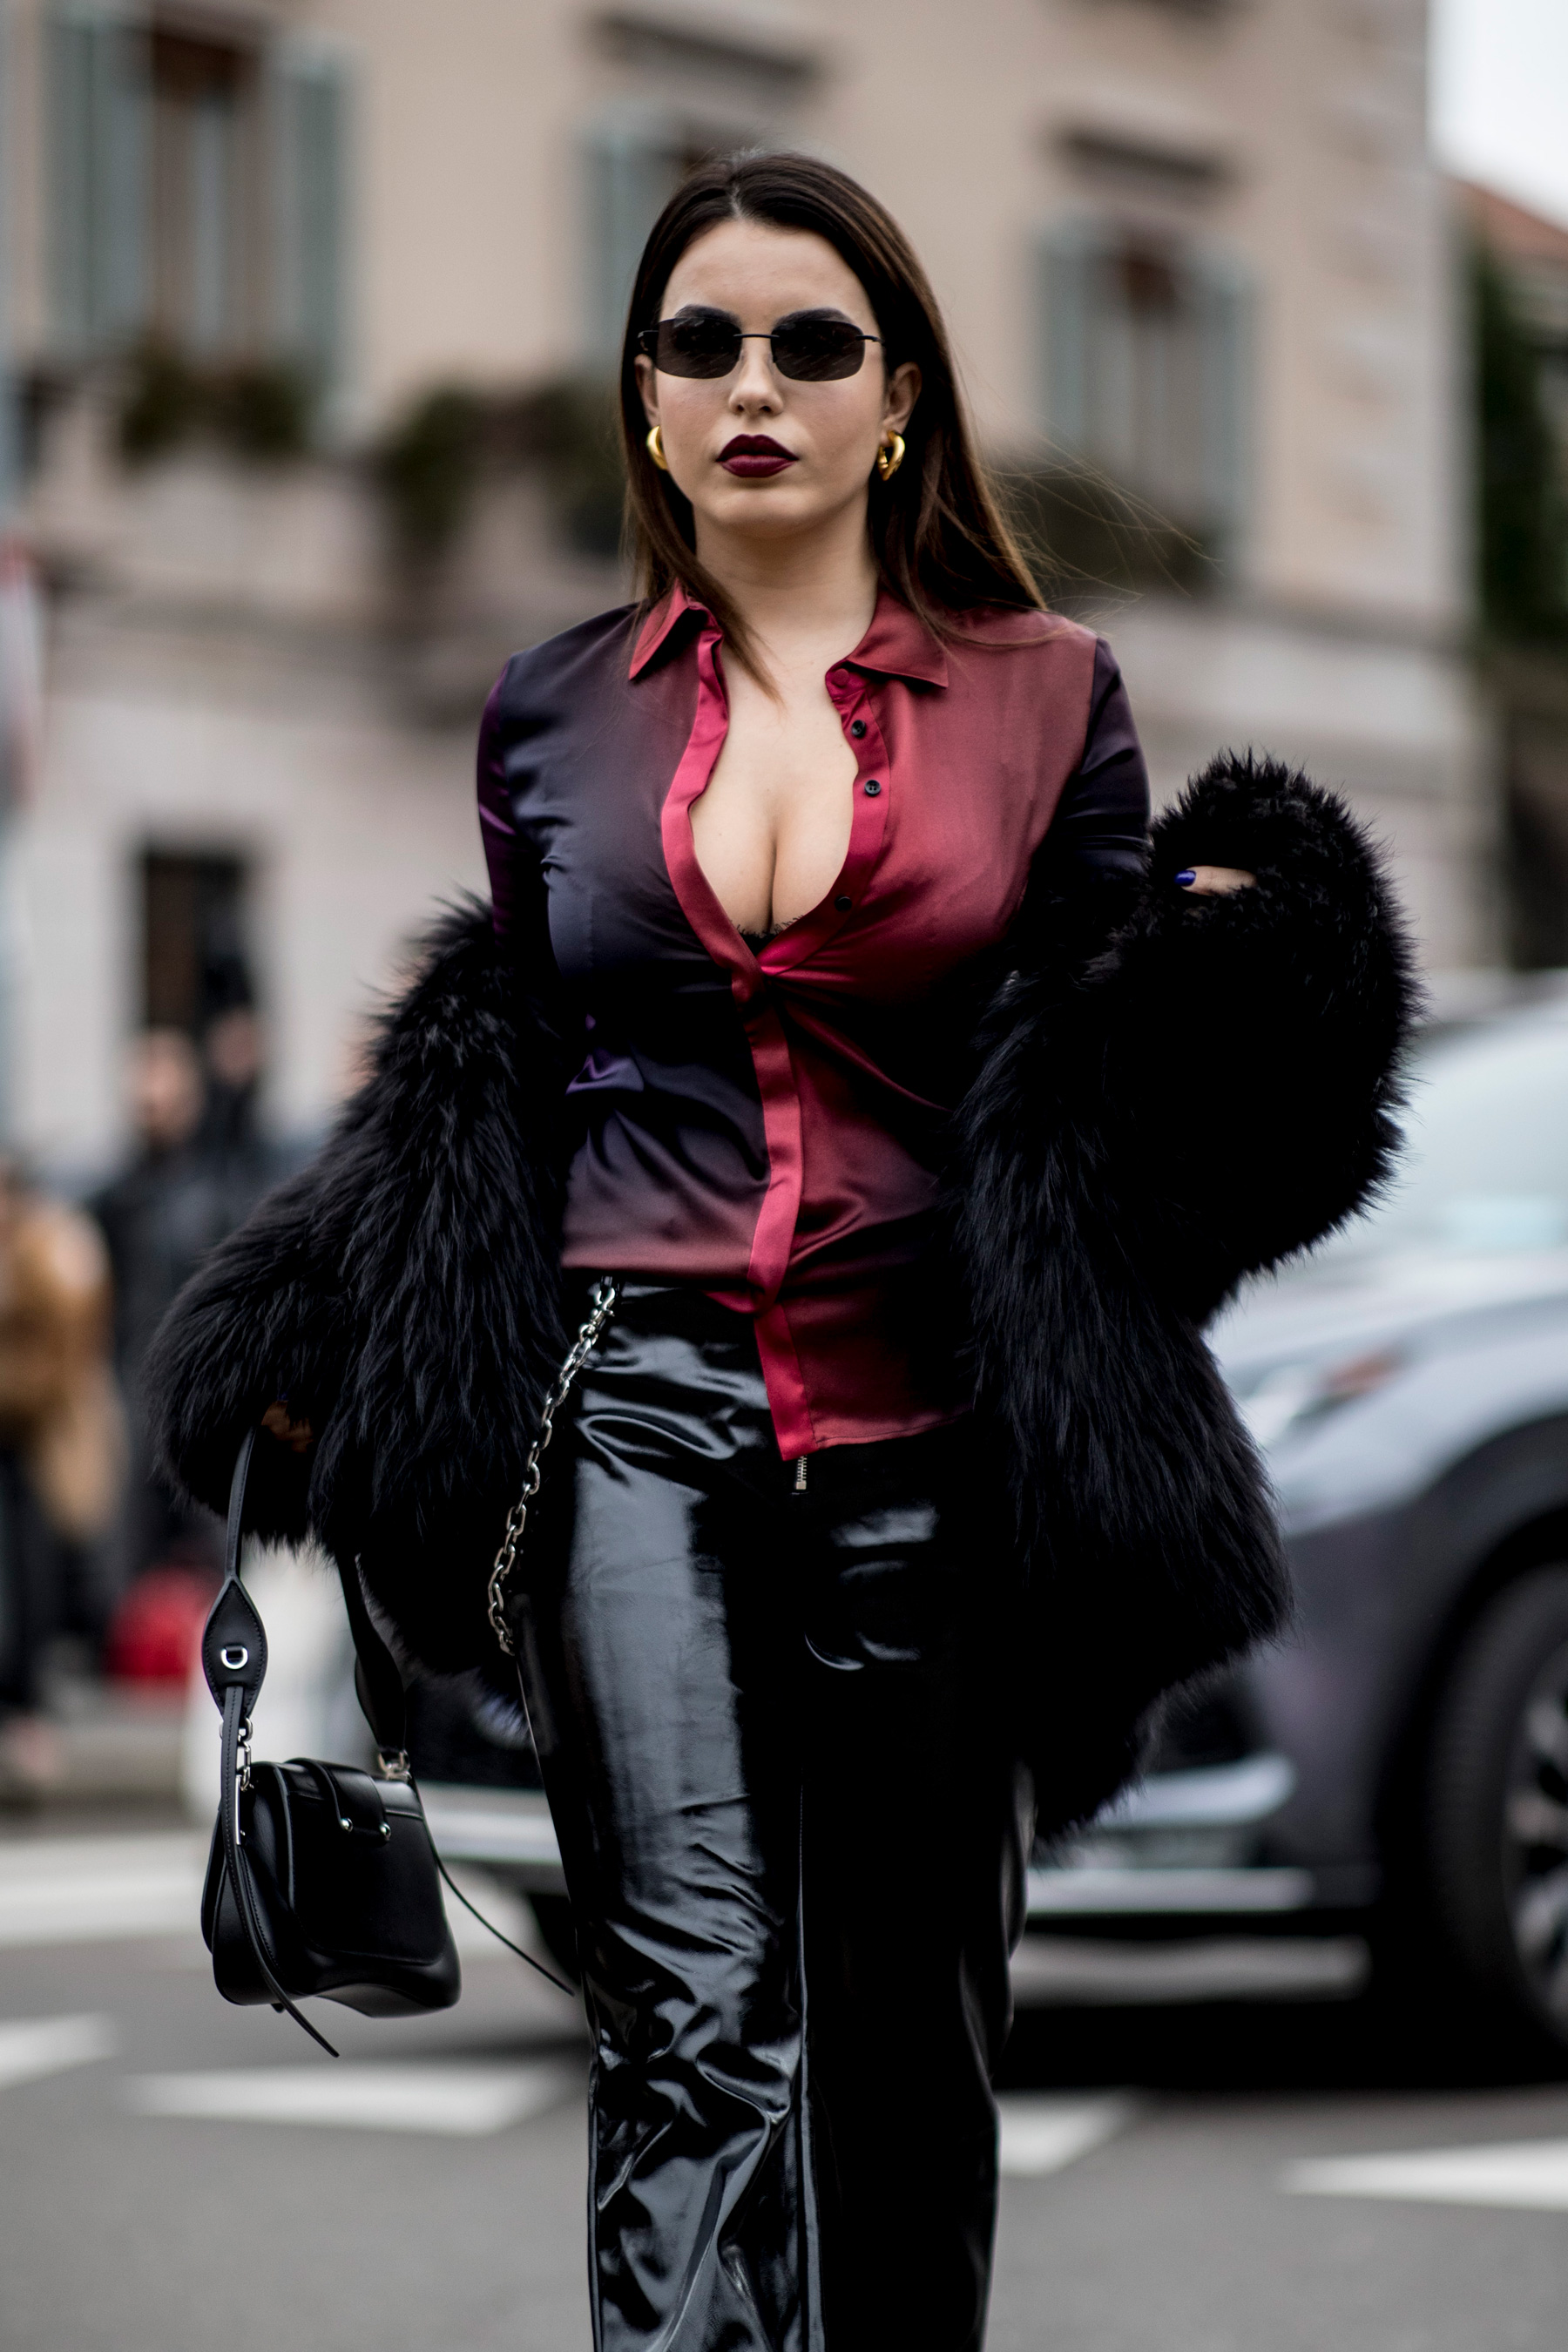 Milano Street Day 4 Fall 2019 Fashion Show